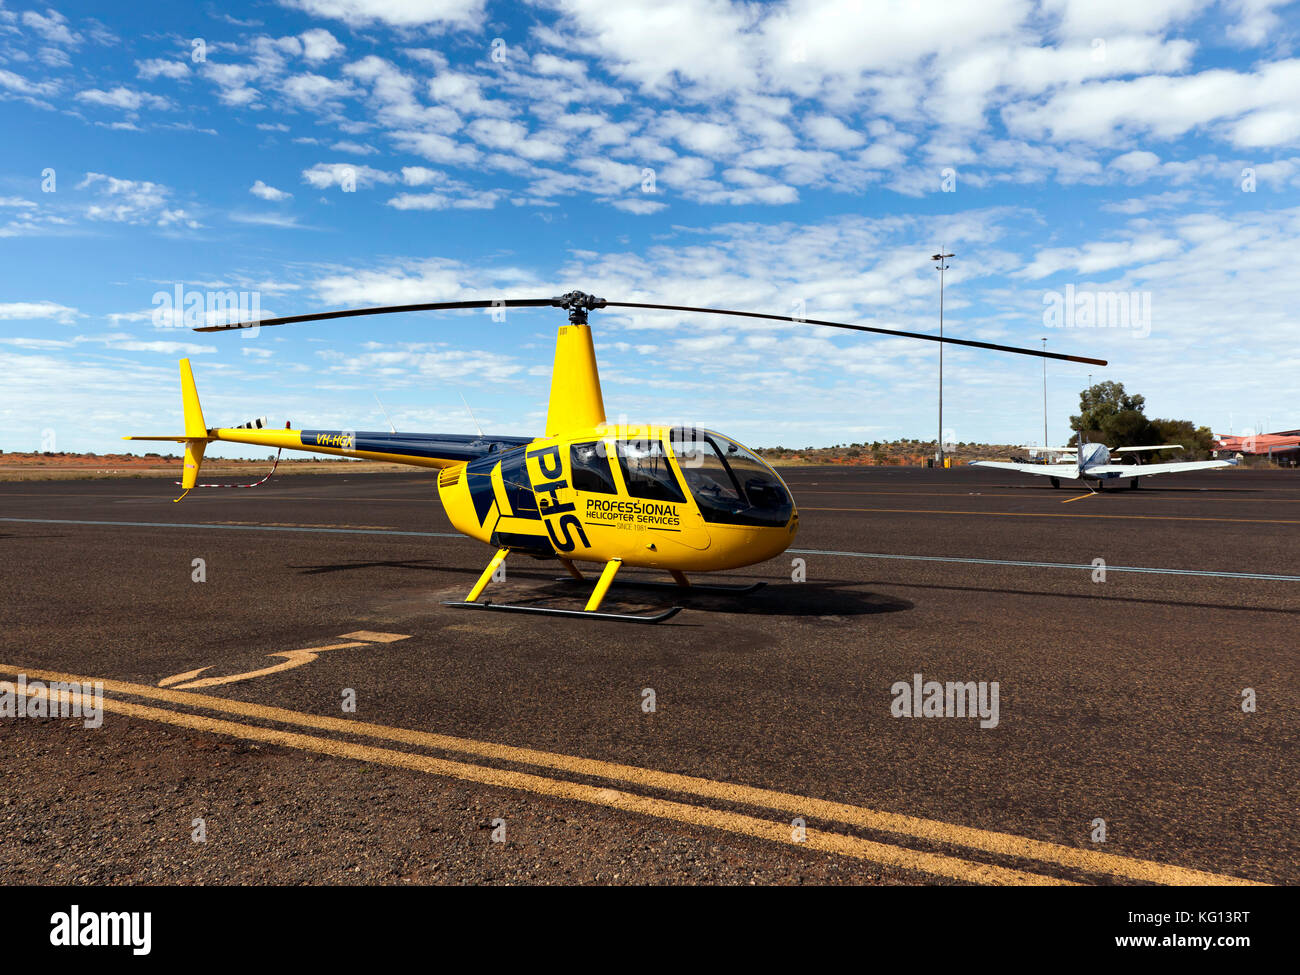 A Robinson R44 Raven operated by Professional Helicopter Services, based at Ayers Rock Airport, near Yulara, Northern - Stock Image